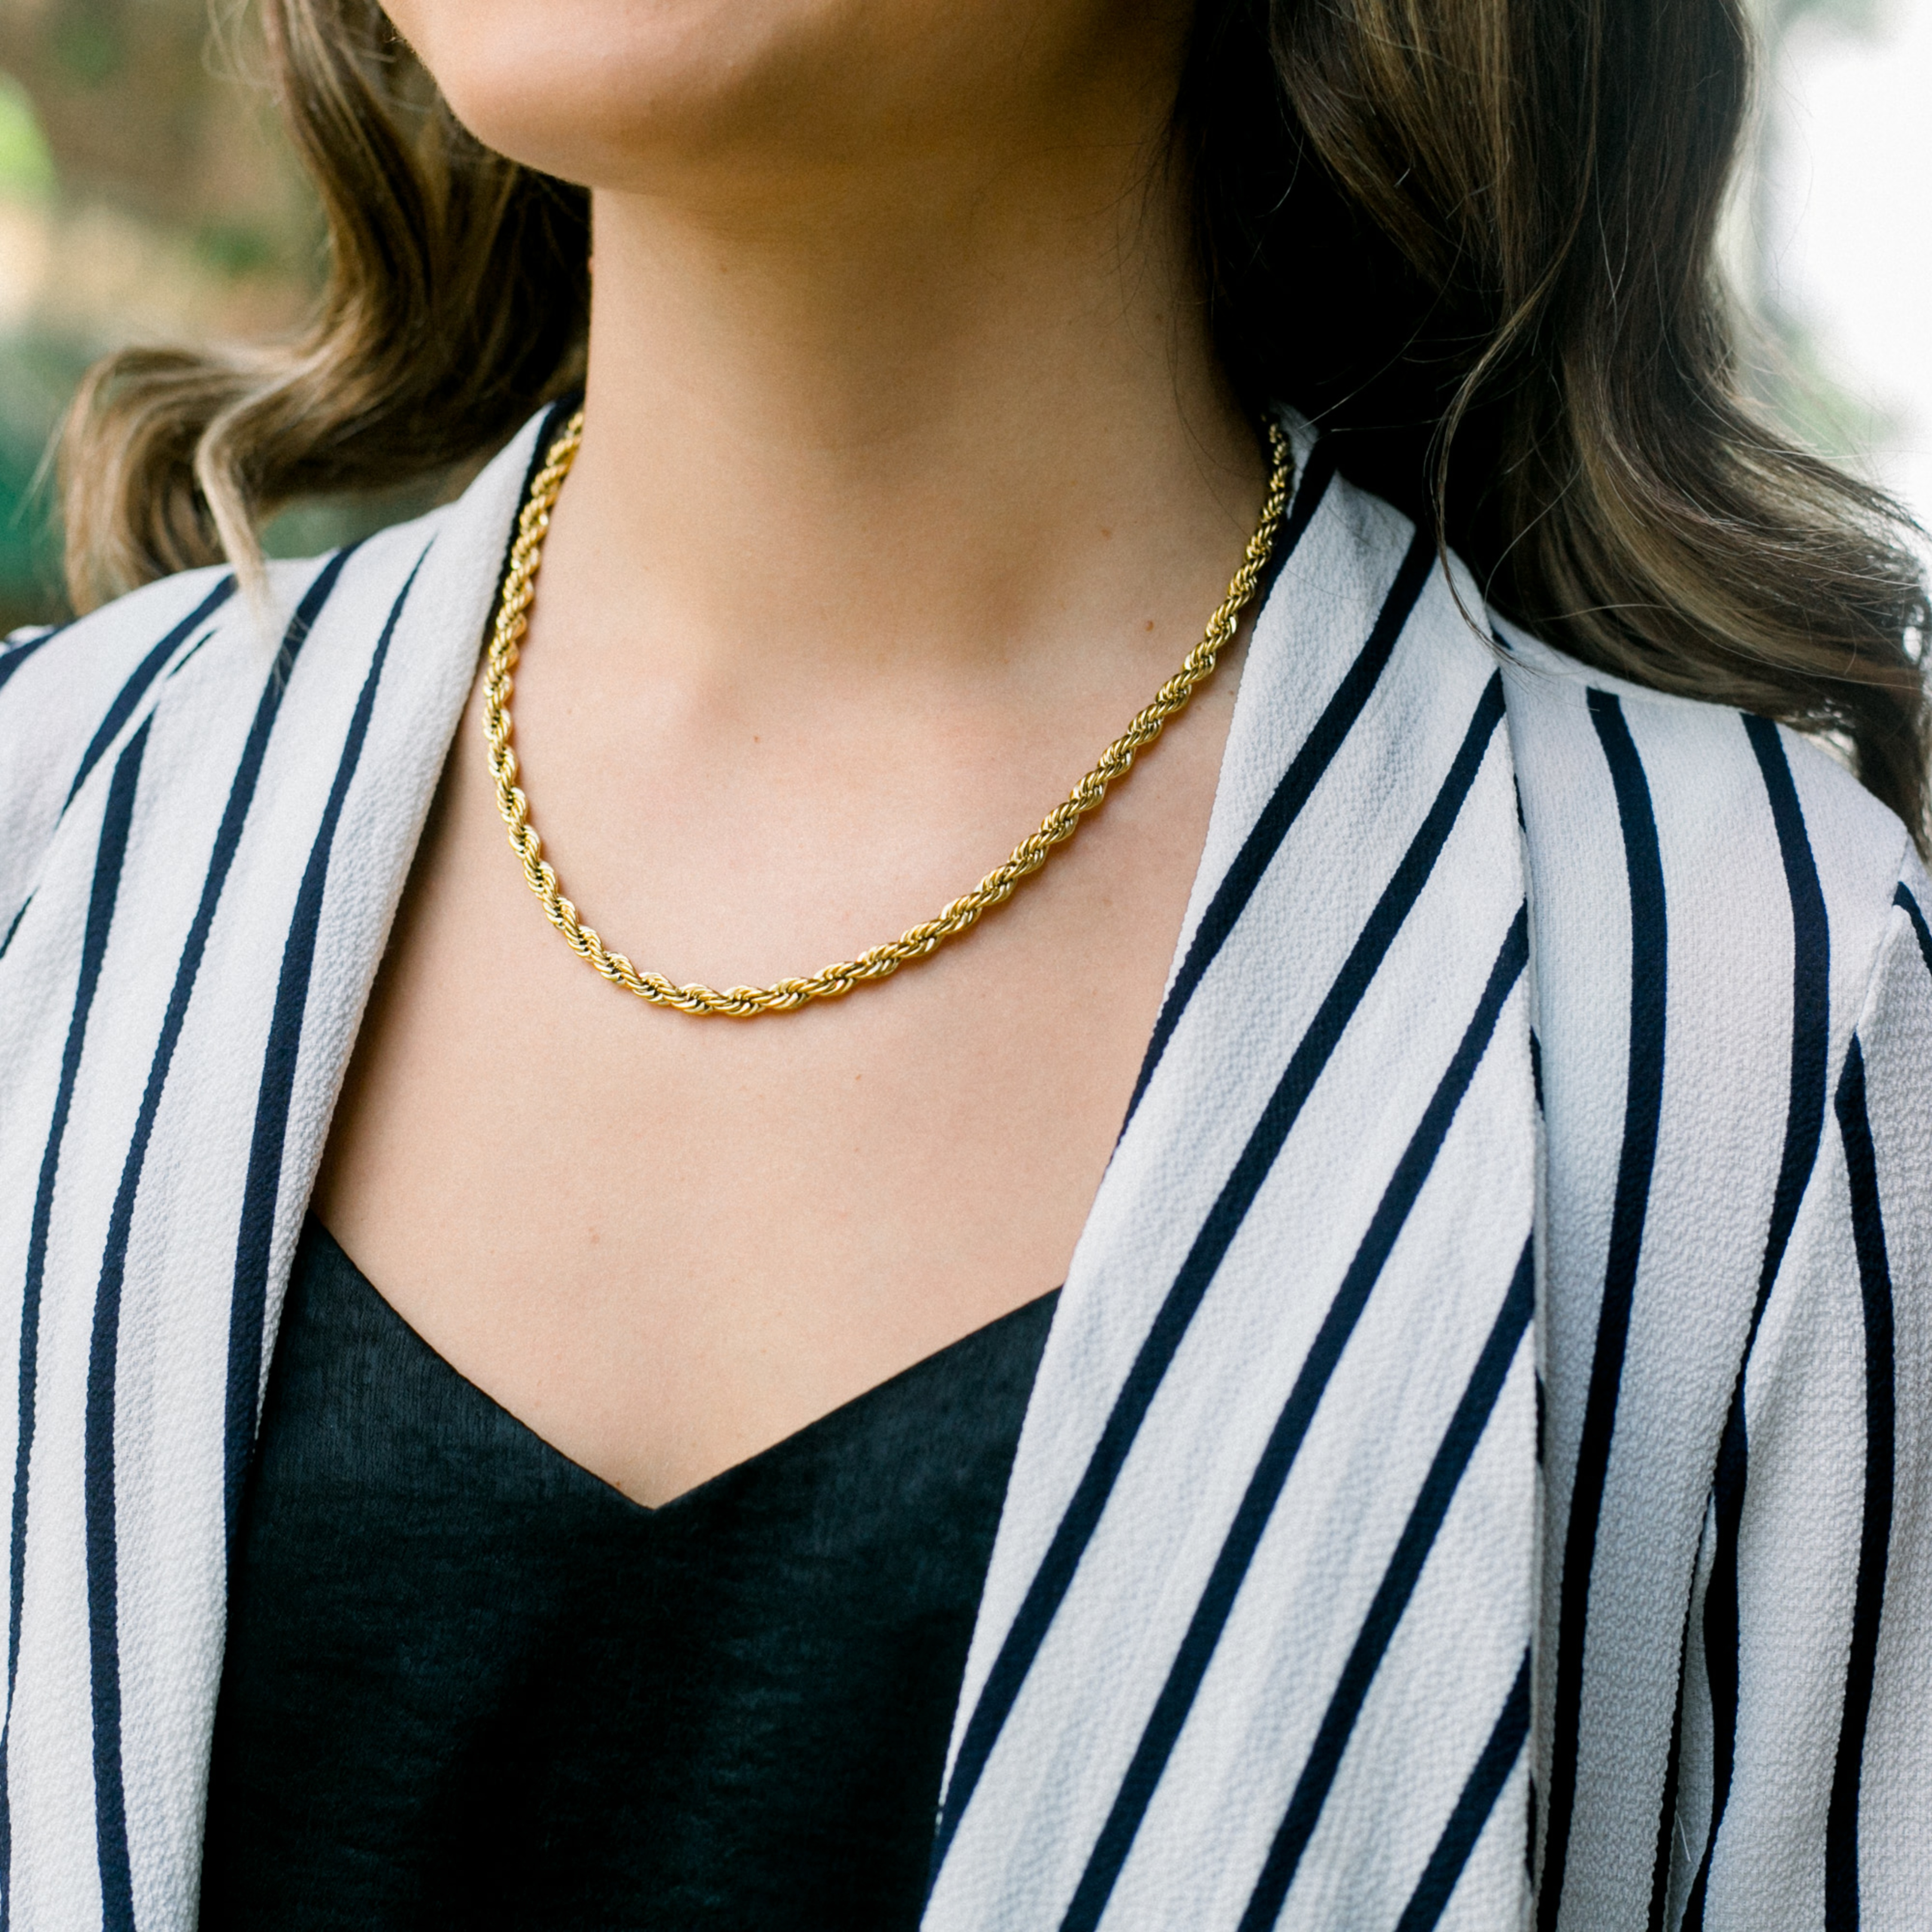 16 \u2013 36 inches KISPER 18k Gold Over Stainless Steel Hip Hop Rope Chain Necklace 5mm